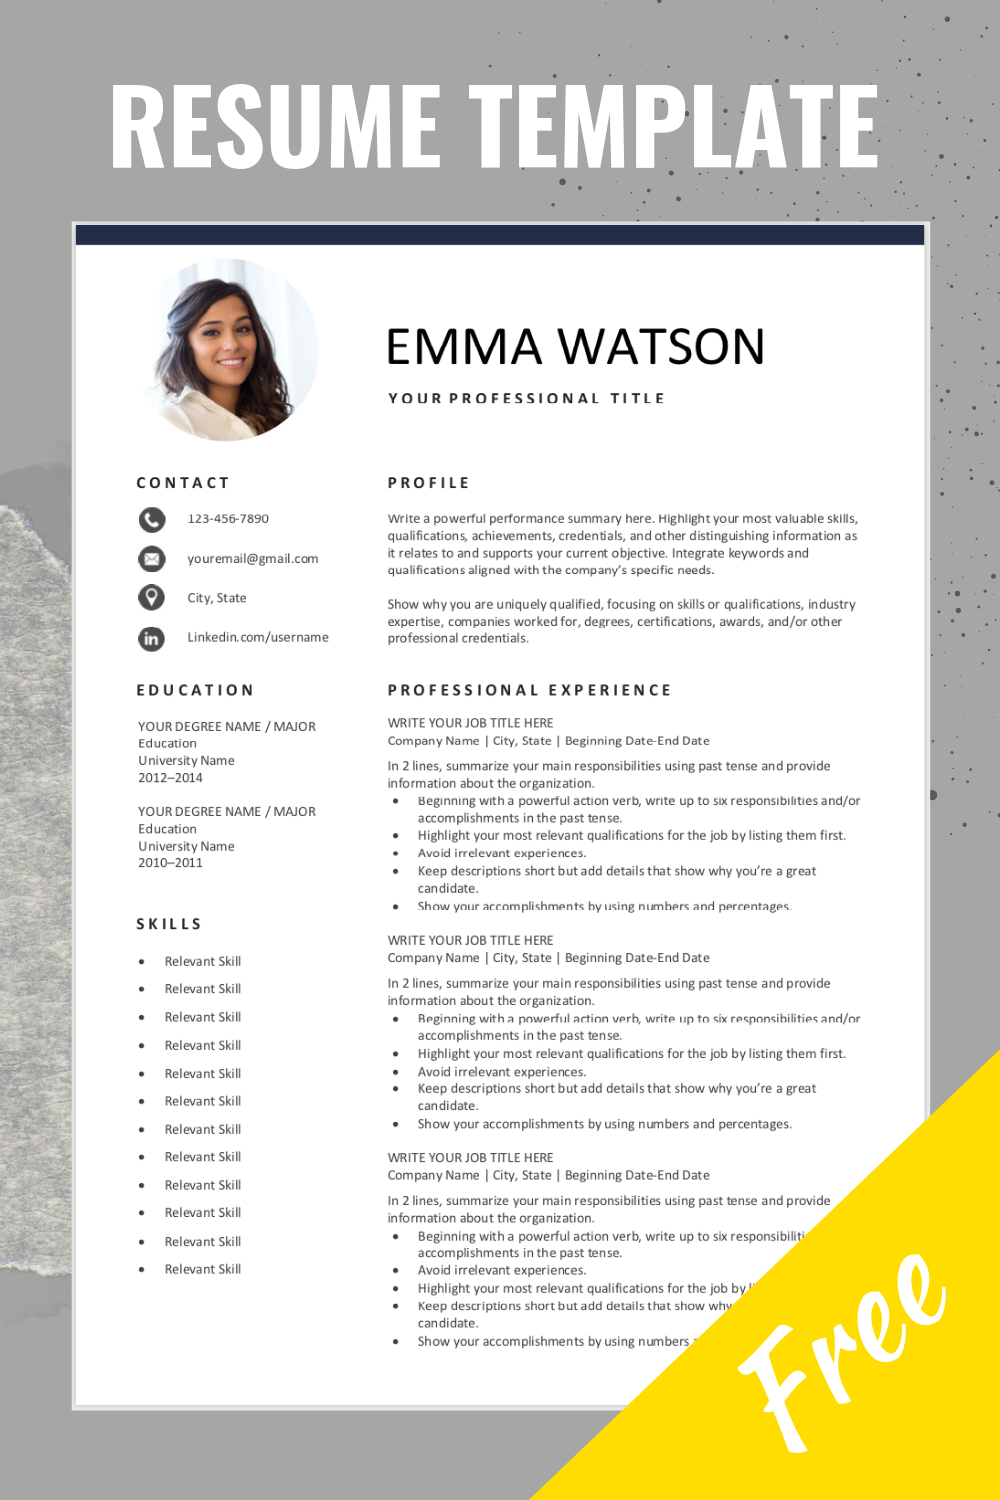 resume template free editable layout of are you looking